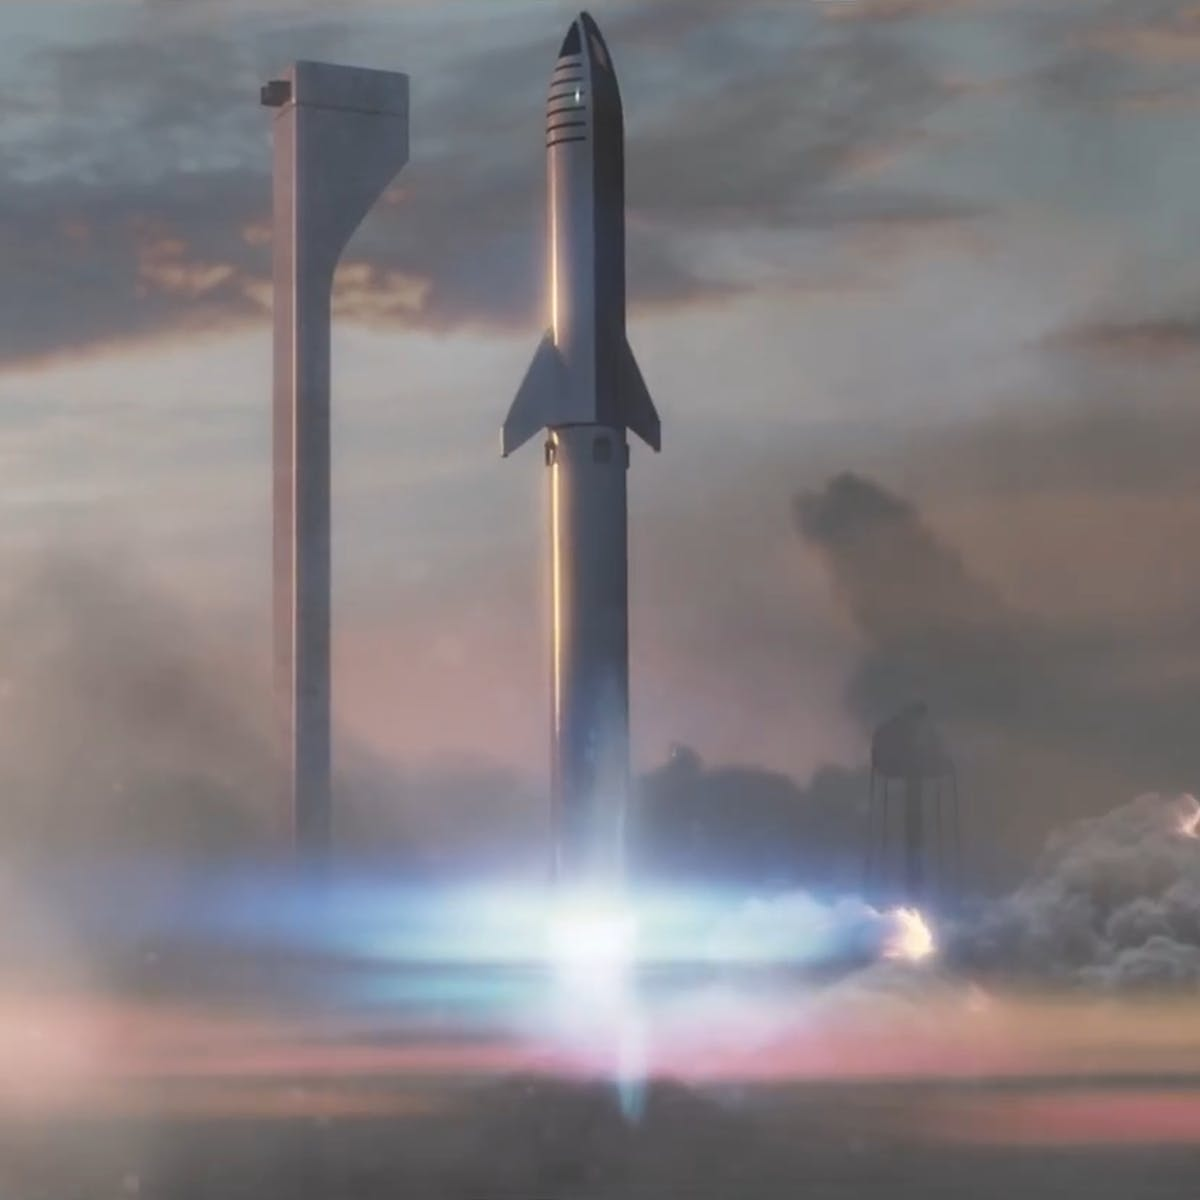 spacex's starship: elon musk's dream of a mars rocket is becoming reality |  inverse